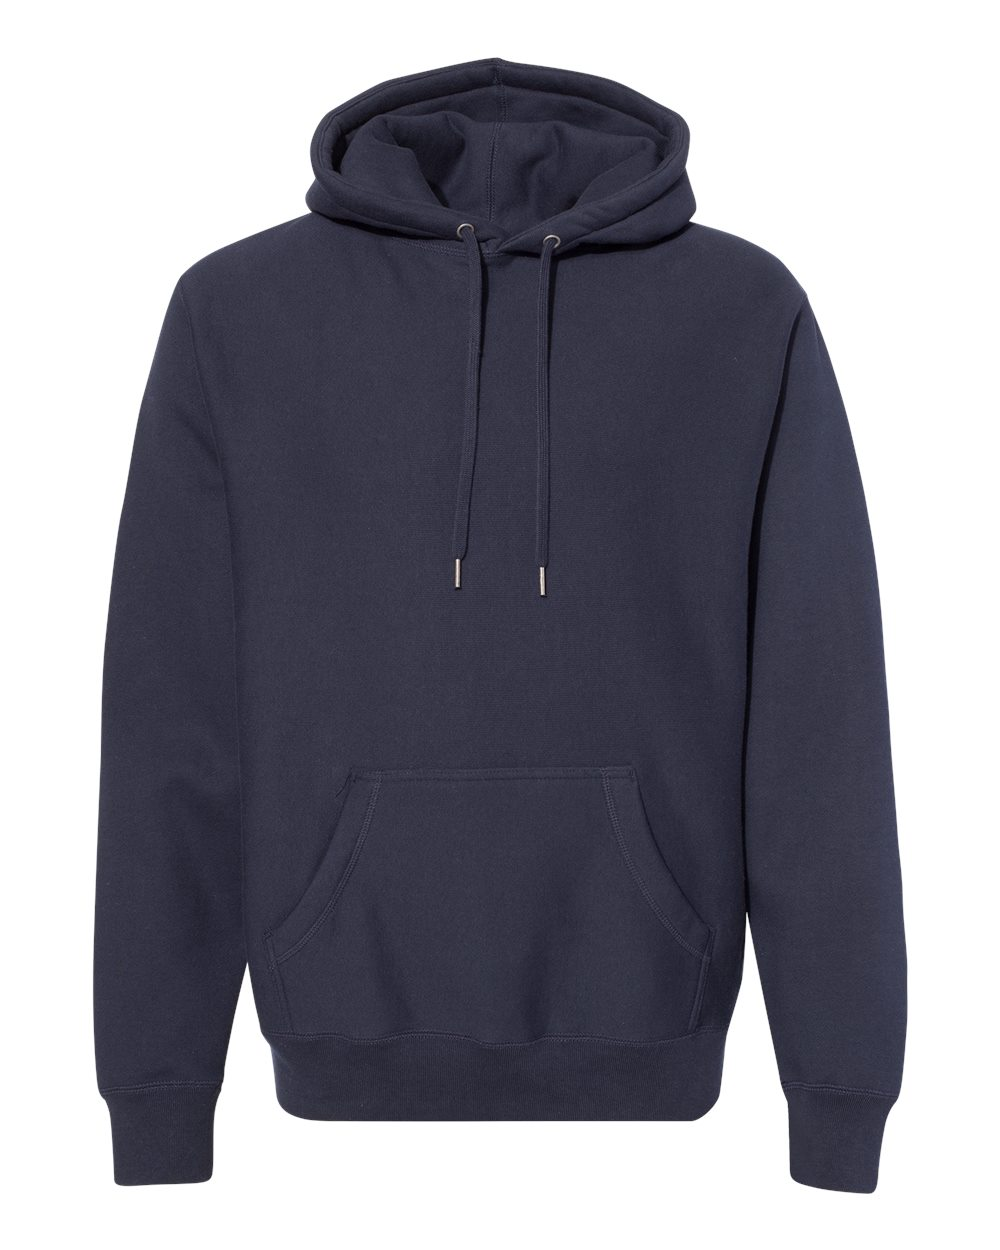 Independent-Trading-Co-Mens-Premium-Heavyweight-Cross-Grain-Hoodie-IND5000P thumbnail 15